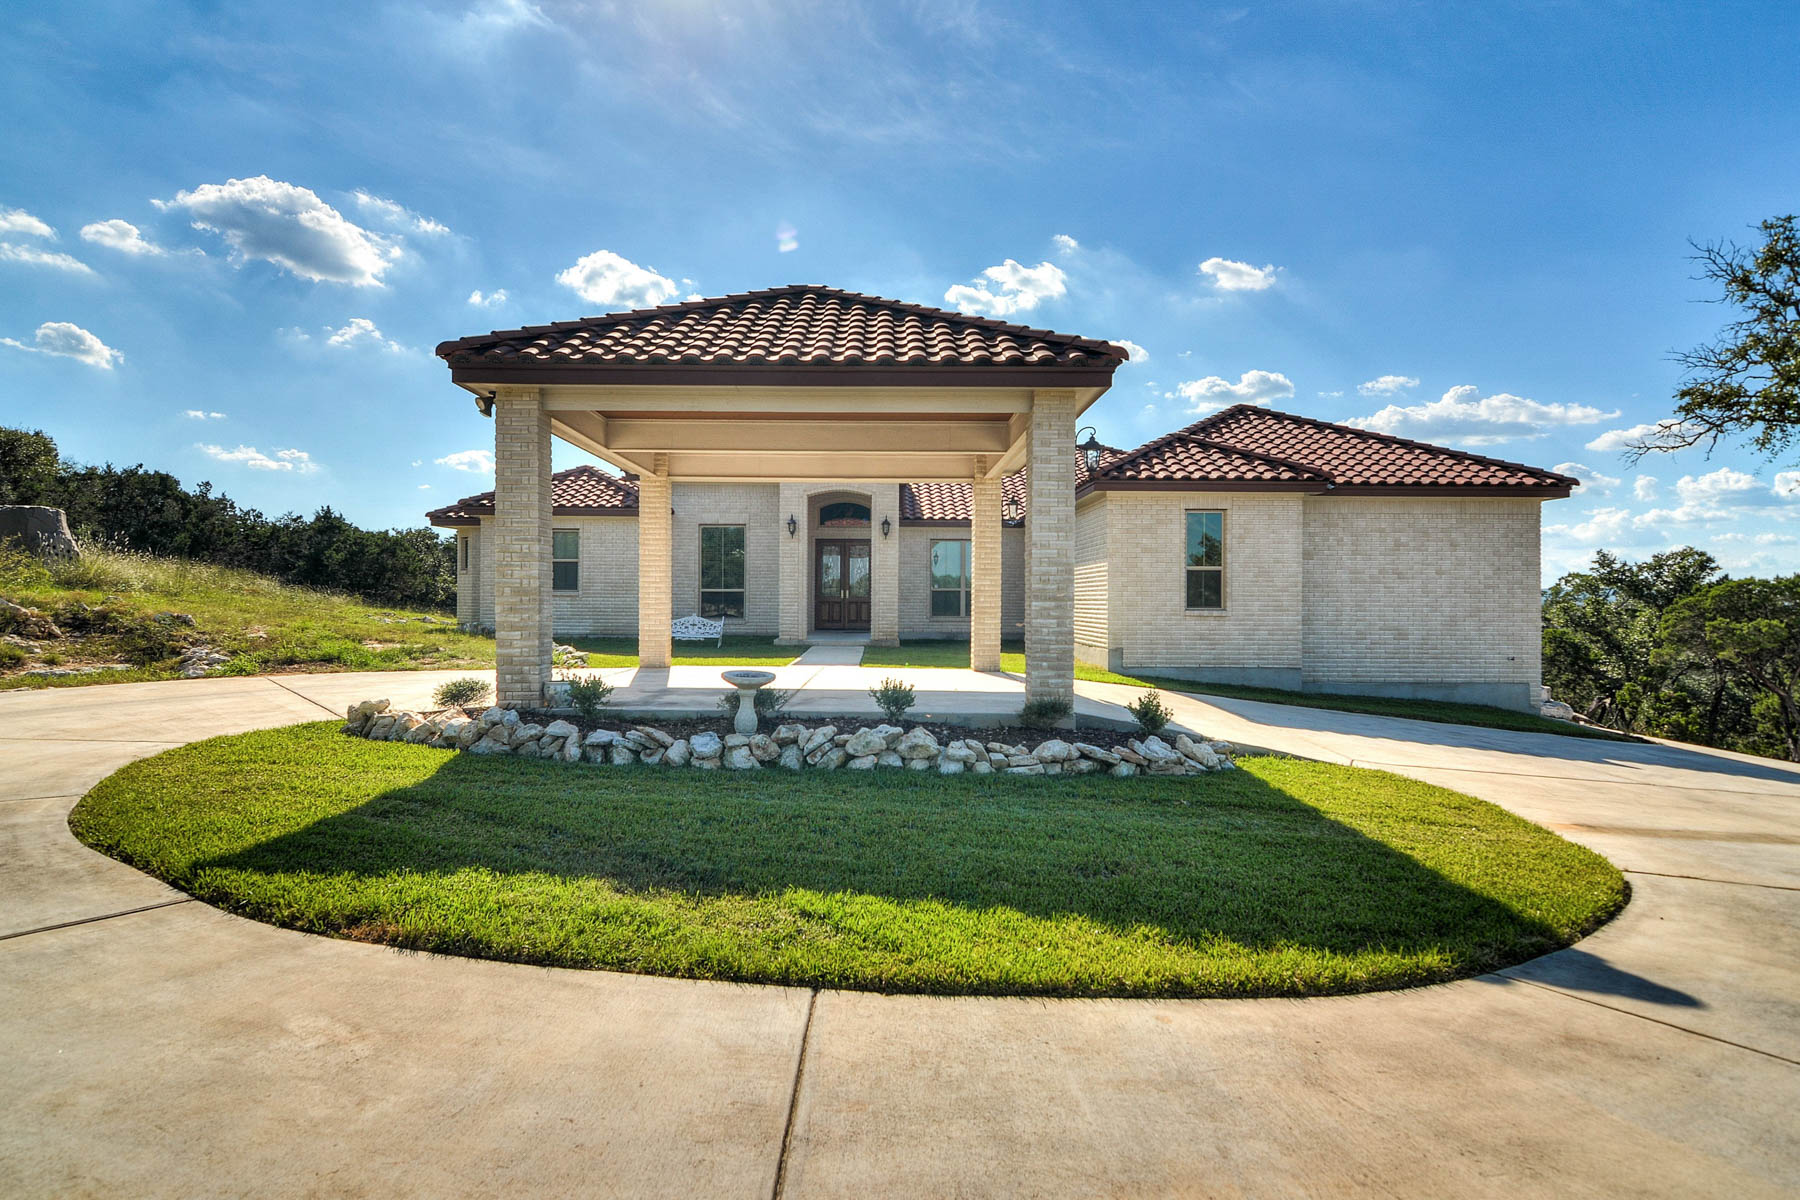 Single Family Home for Sale at Beautiful Custom Holloway Hill Country Home 22813 East Range Cross Mountain Ranch, San Antonio, Texas, 78255 United States